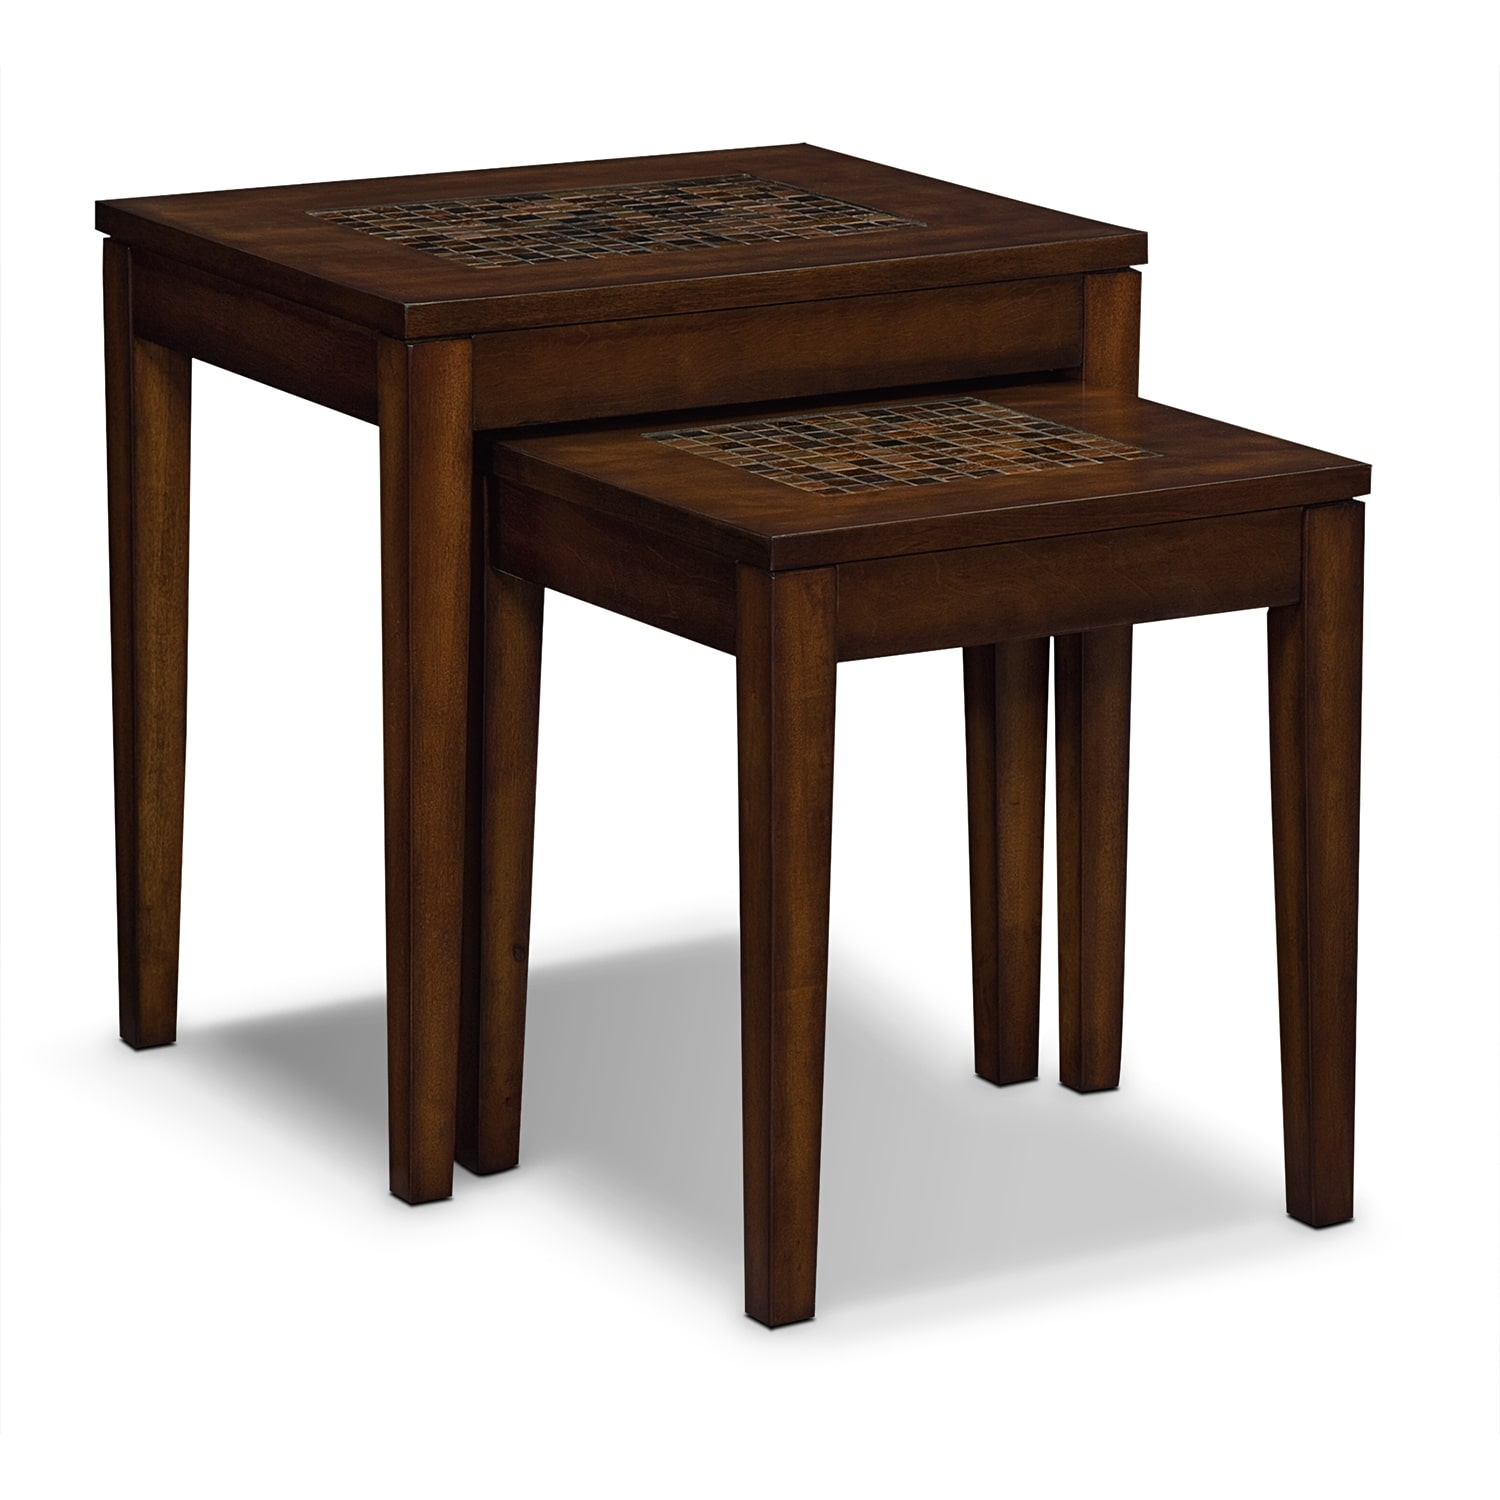 Nesting Tables Carson Nesting Tables Brown Value City Furniture